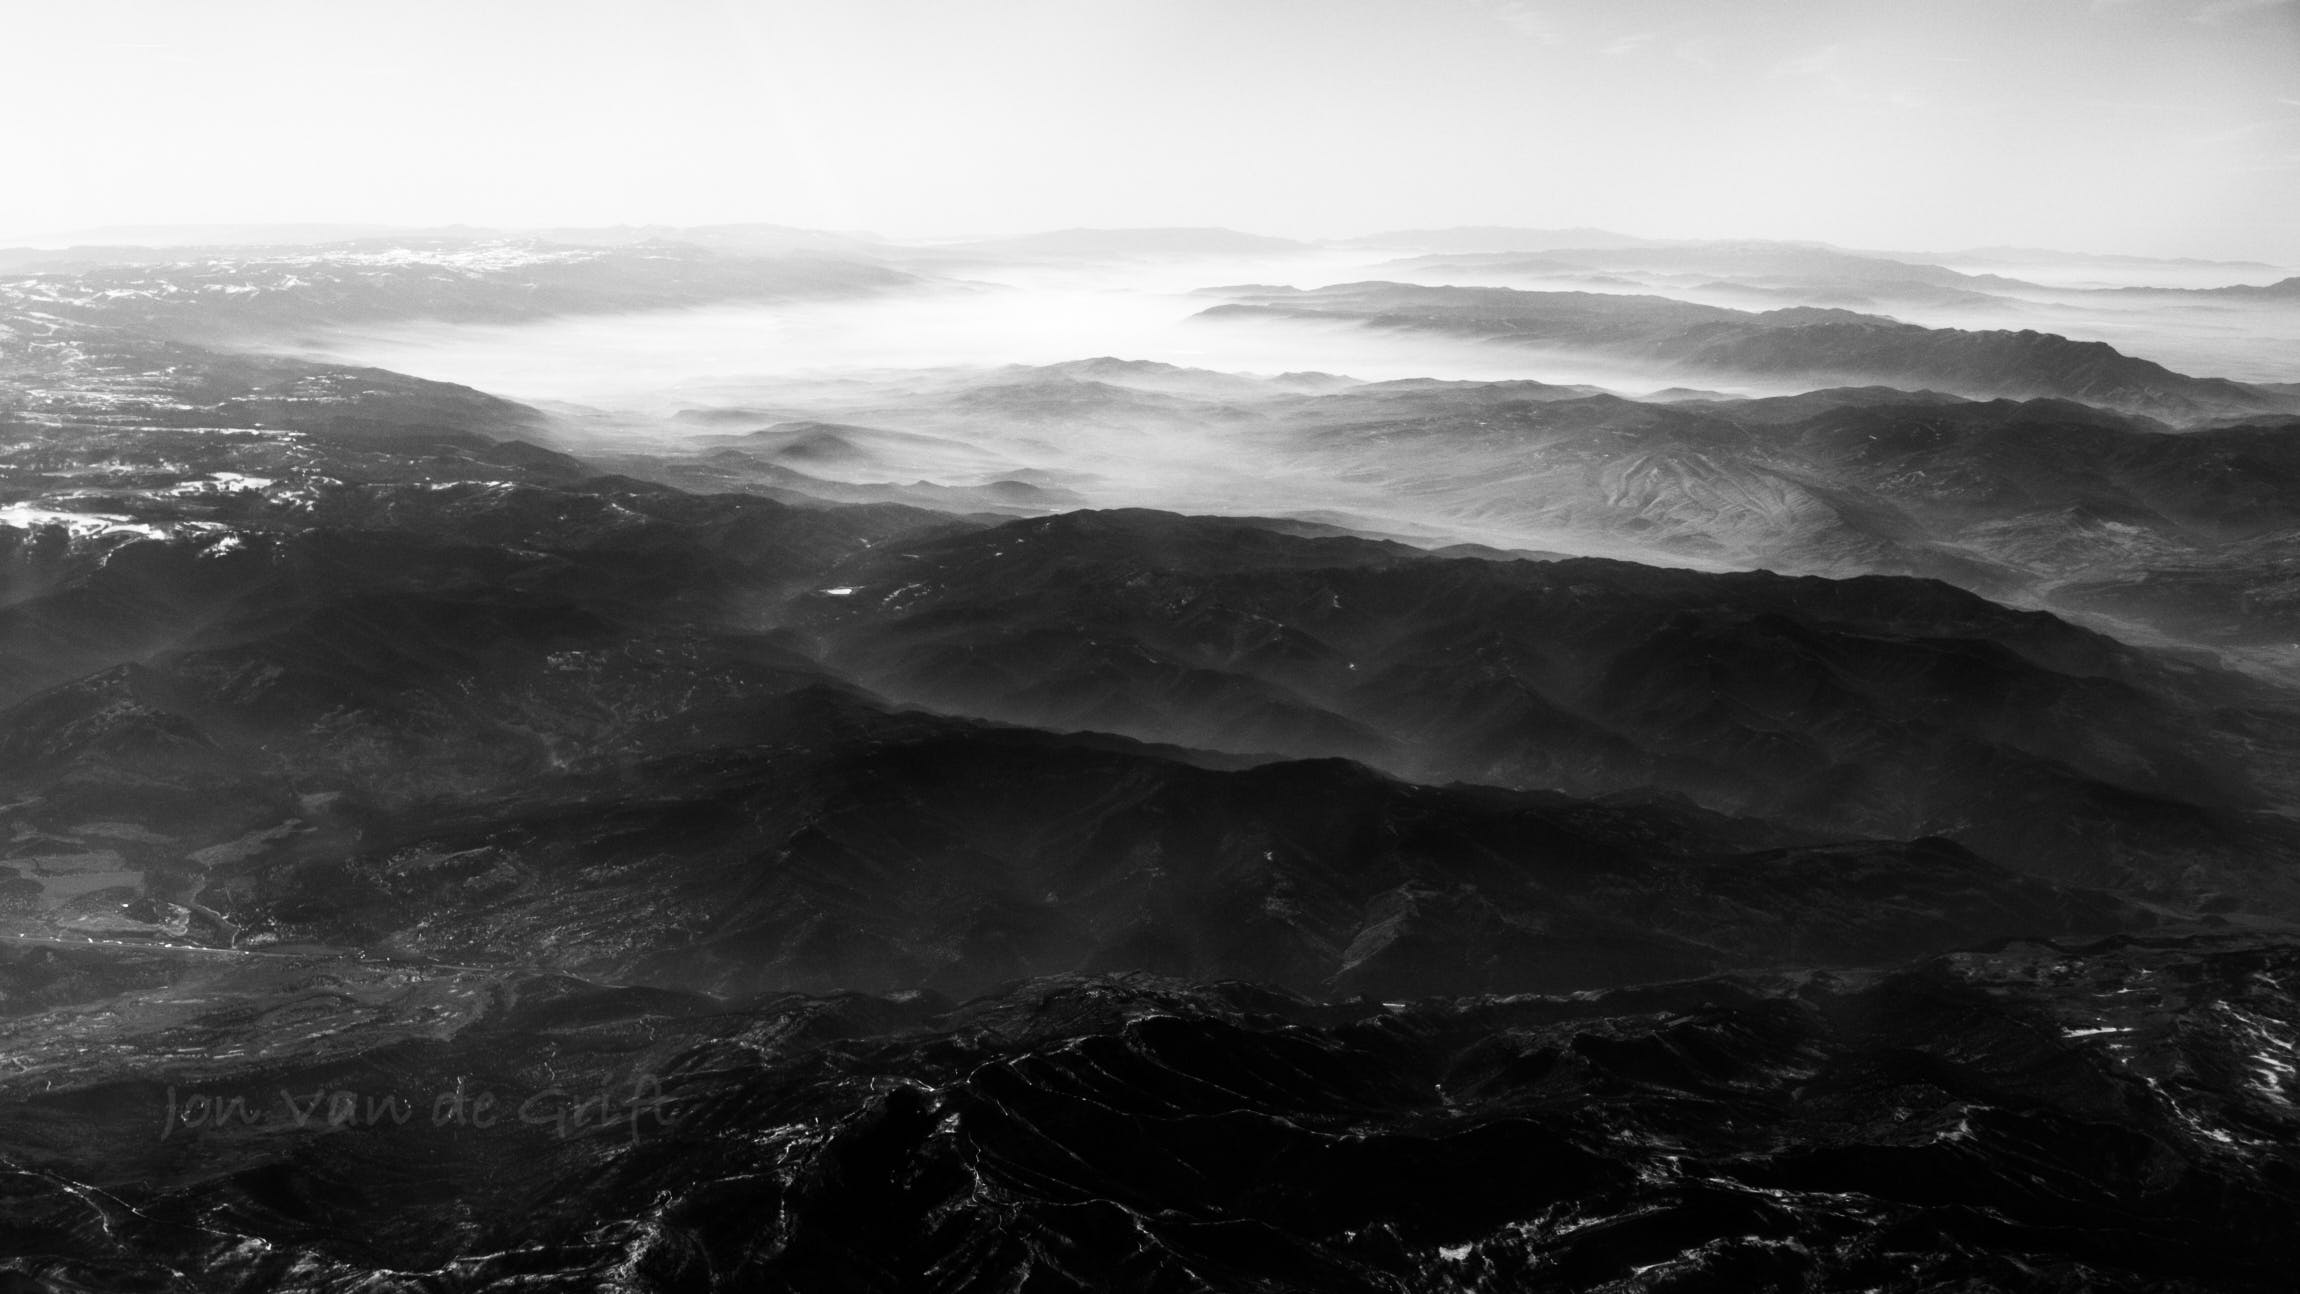 Black and white aerial photograph of haze in mountain valleys.